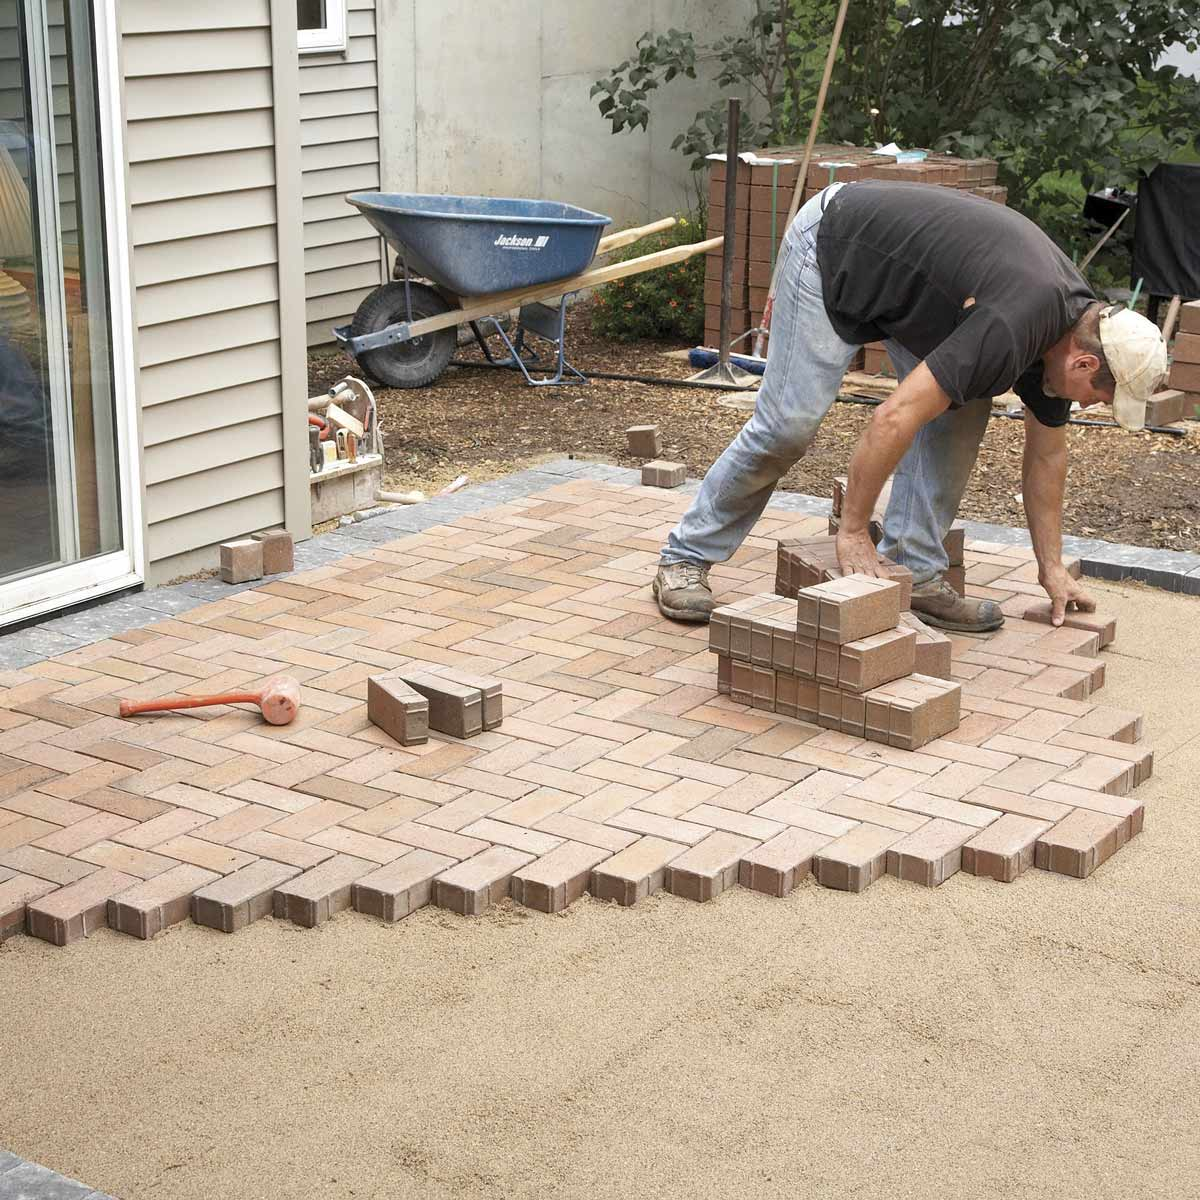 Pavers-Denton TX Professional Landscapers & Outdoor Living Designs-We offer Landscape Design, Outdoor Patios & Pergolas, Outdoor Living Spaces, Stonescapes, Residential & Commercial Landscaping, Irrigation Installation & Repairs, Drainage Systems, Landscape Lighting, Outdoor Living Spaces, Tree Service, Lawn Service, and more.